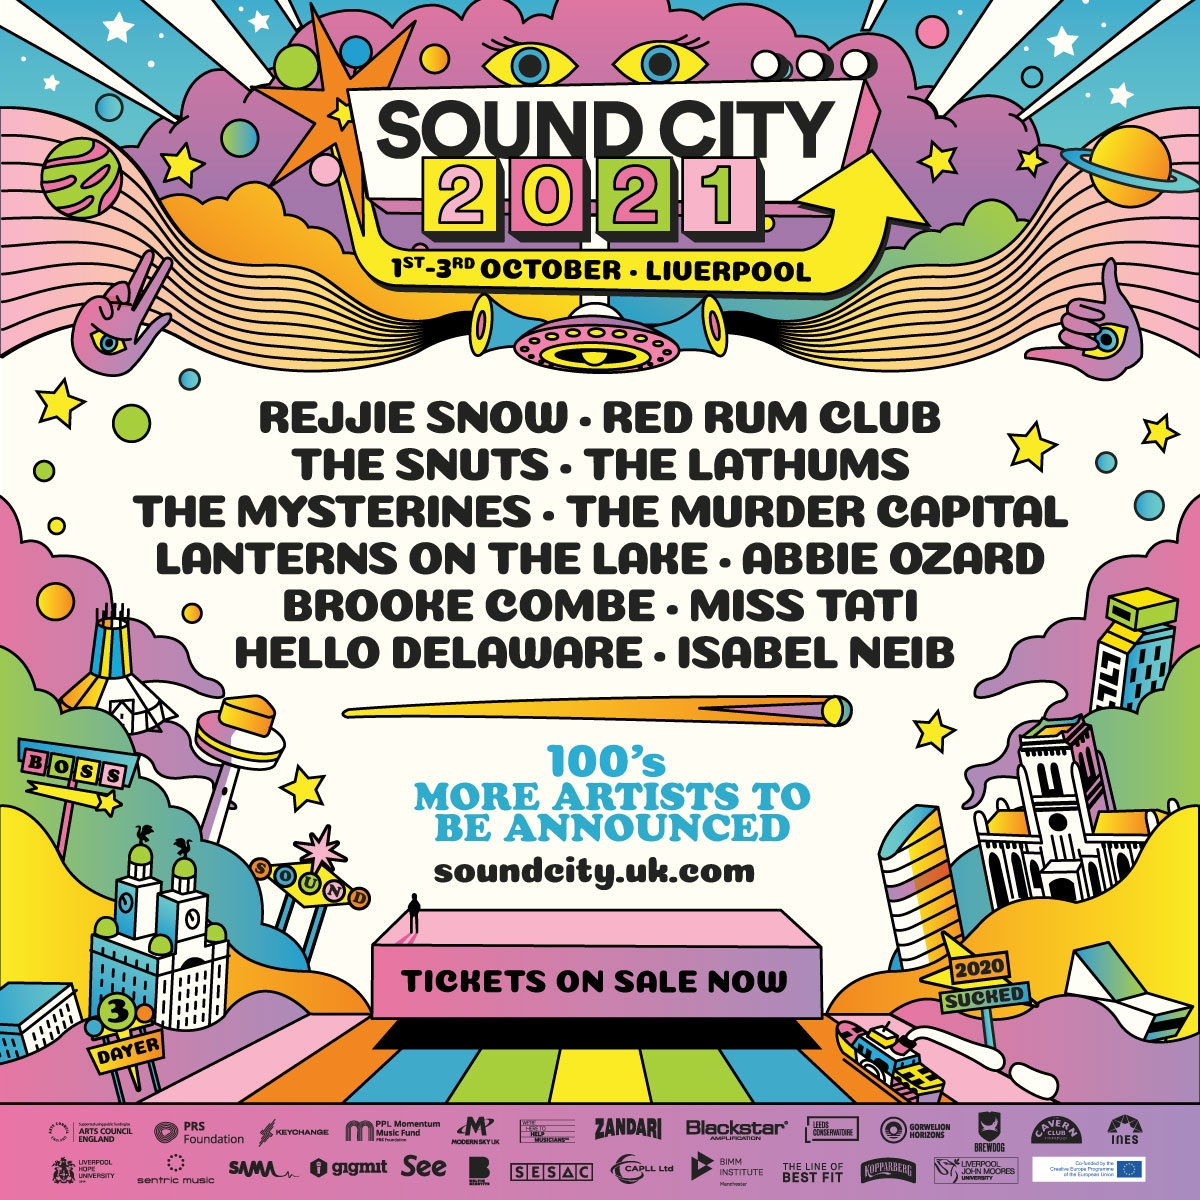 Sound City 2021 in October!